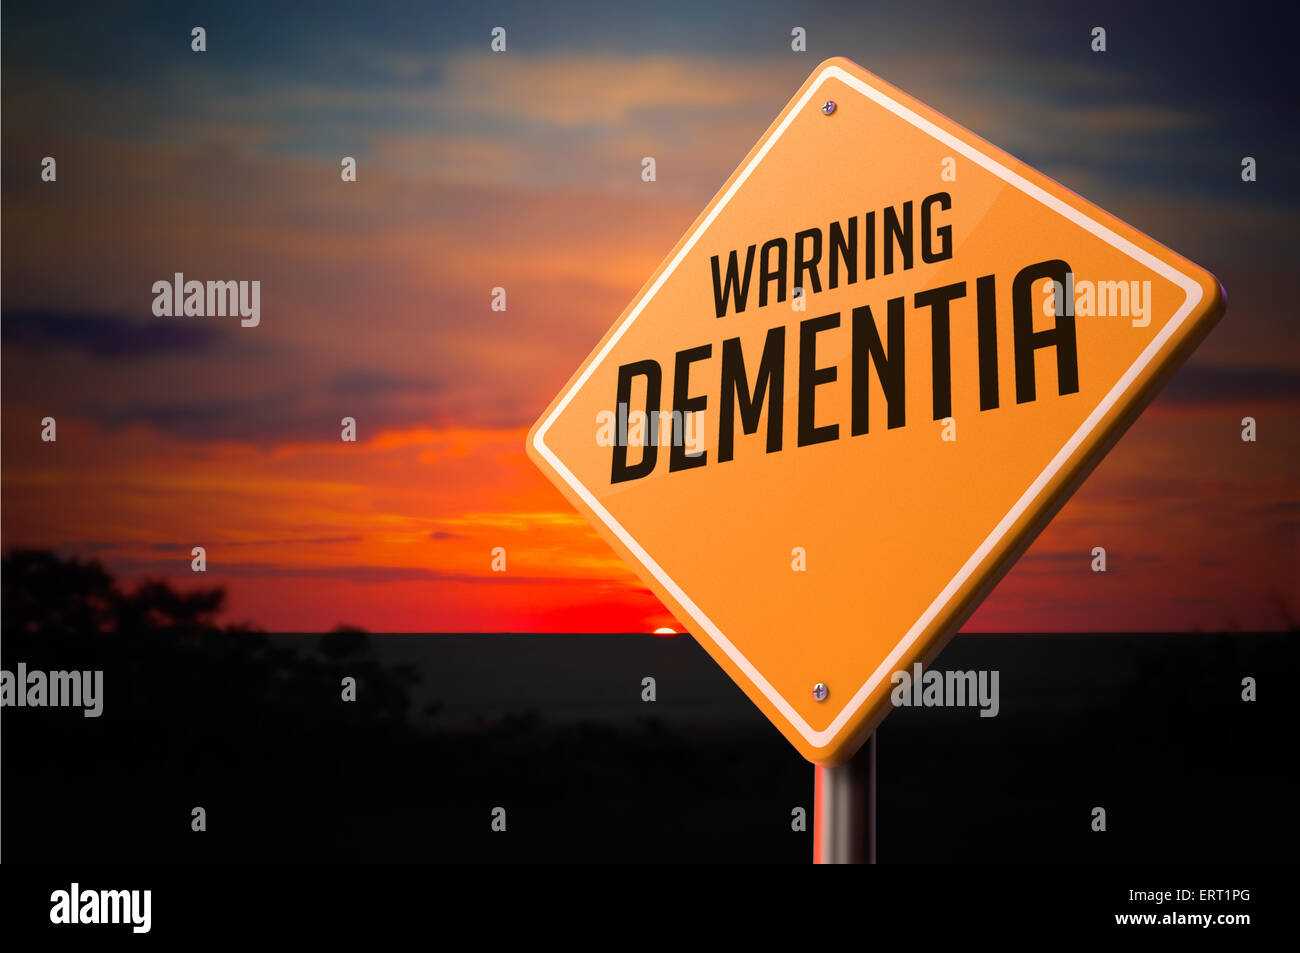 Dementia on Warning Road Sign. - Stock Image